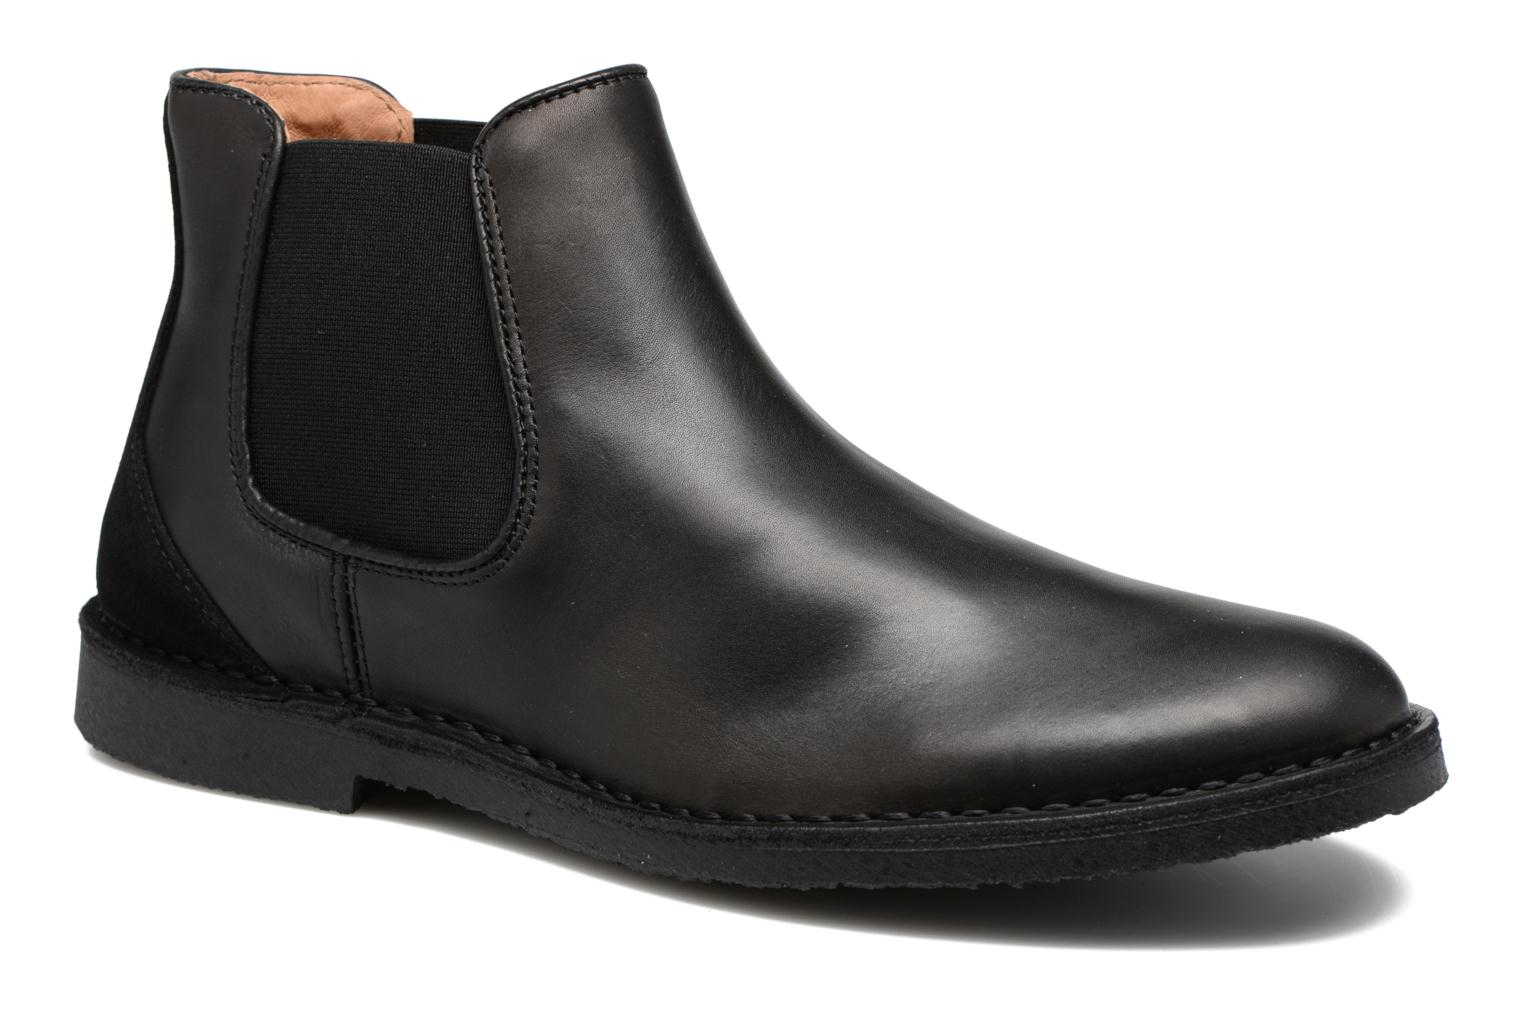 Marques Chaussure homme Selected Homme homme Royce chelsea leather boot Black